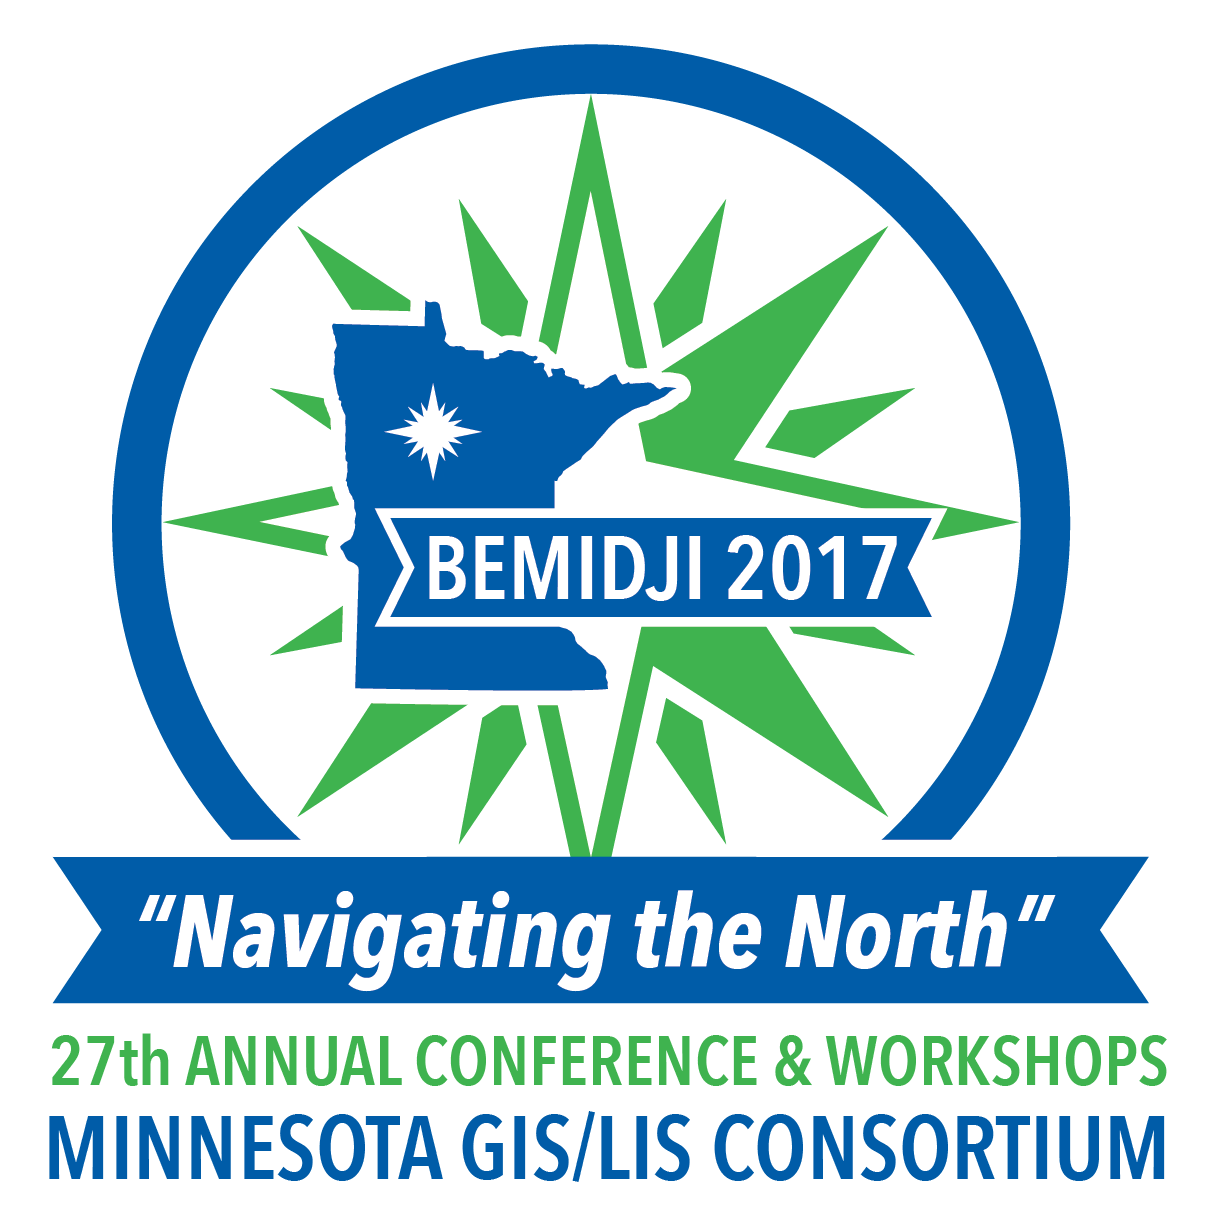 2017 MnGIS/LIS Conference